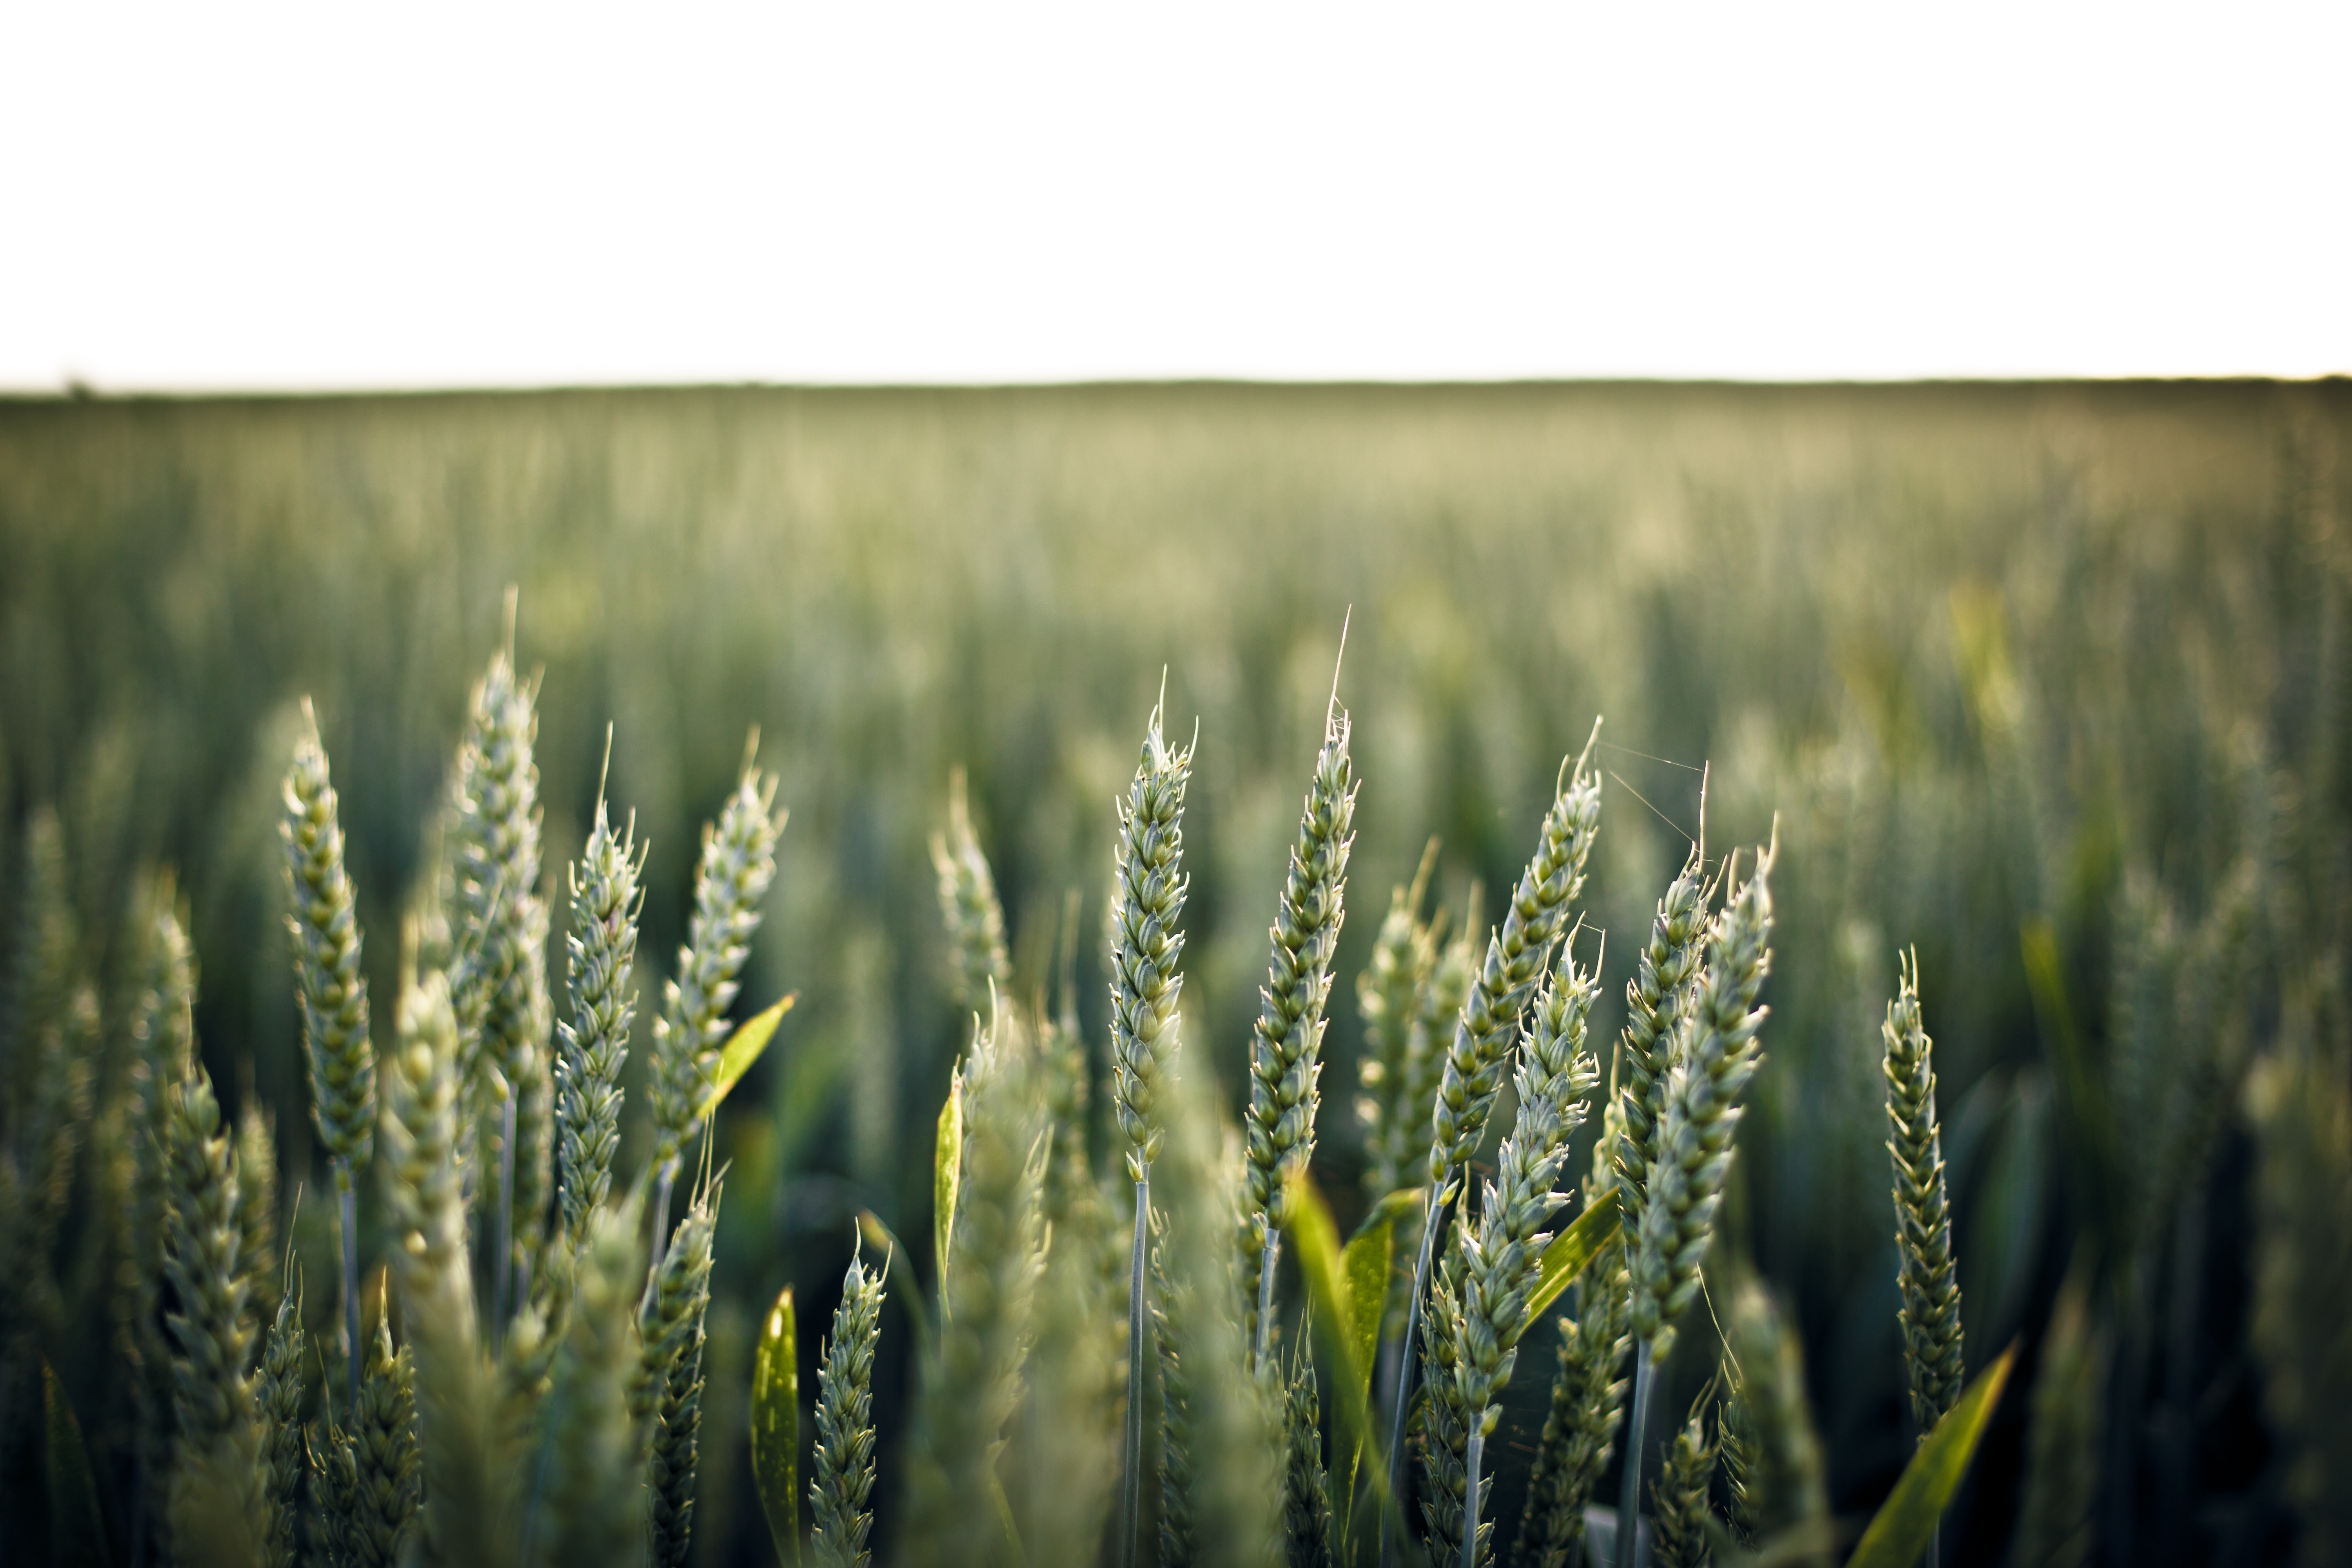 A close up of a group of fresh green wheat ears in a wheat field